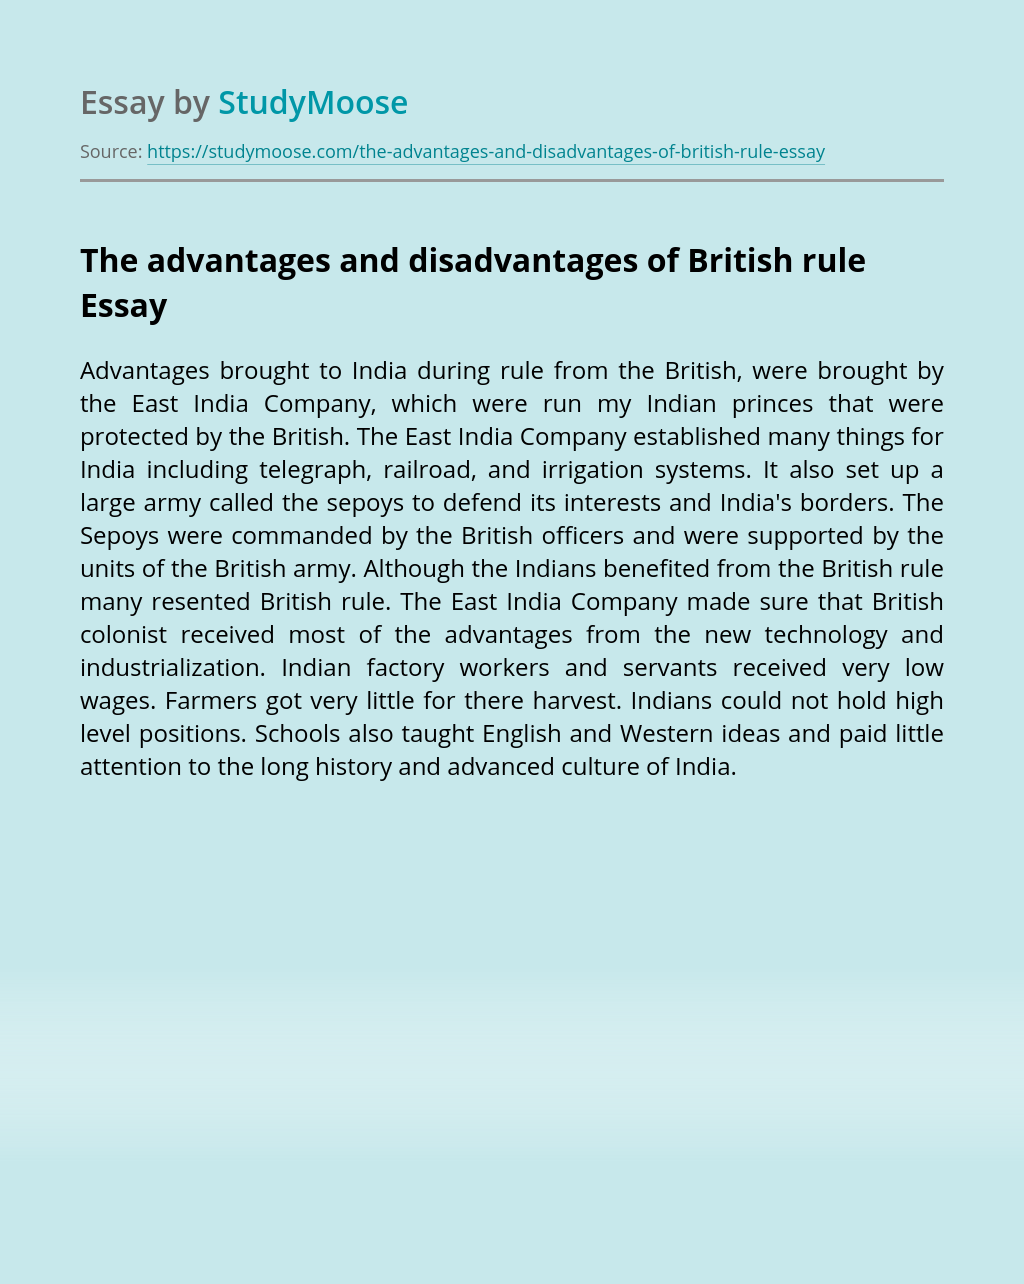 The advantages and disadvantages of British rule